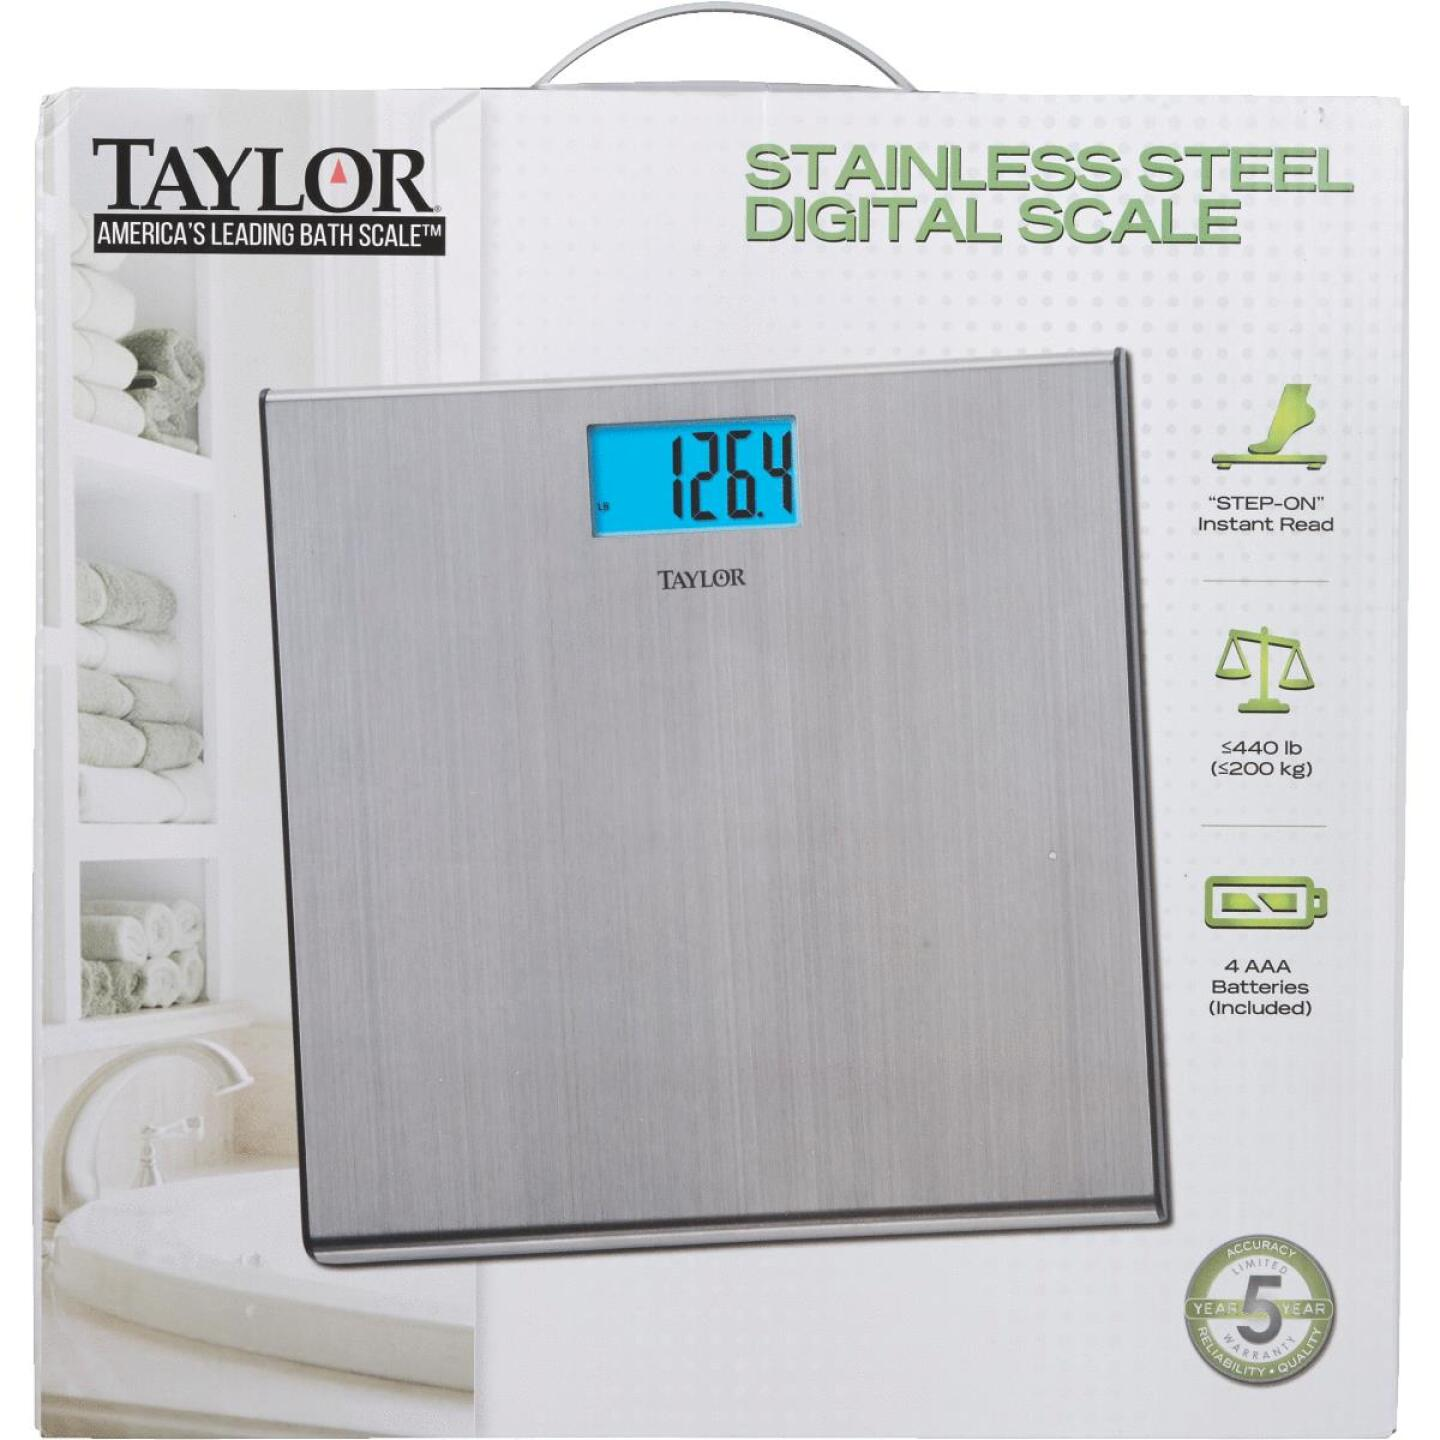 Taylor Digital 440 Lb. Stainless Steel Bath Scale, Silver Image 2